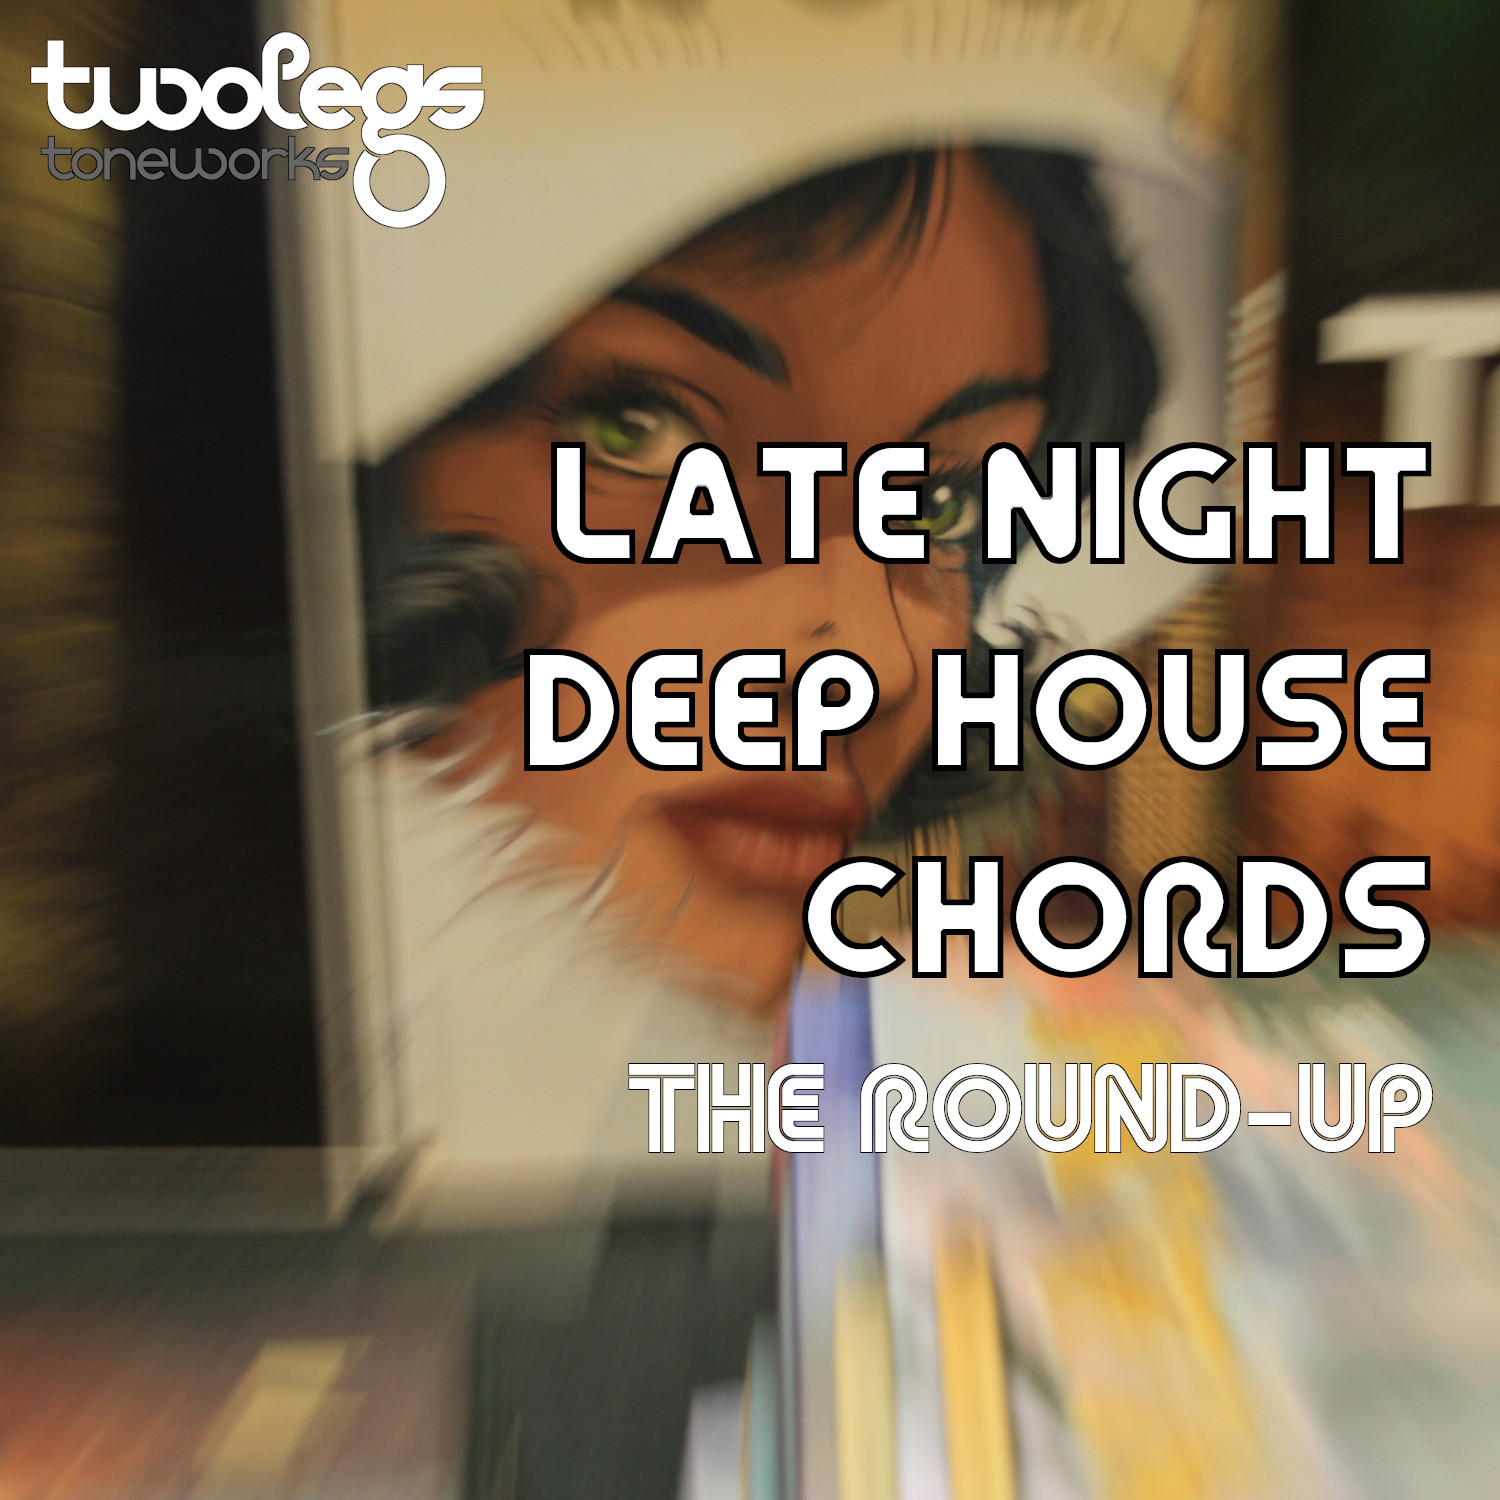 Late Night Deep House Chords Round-Up